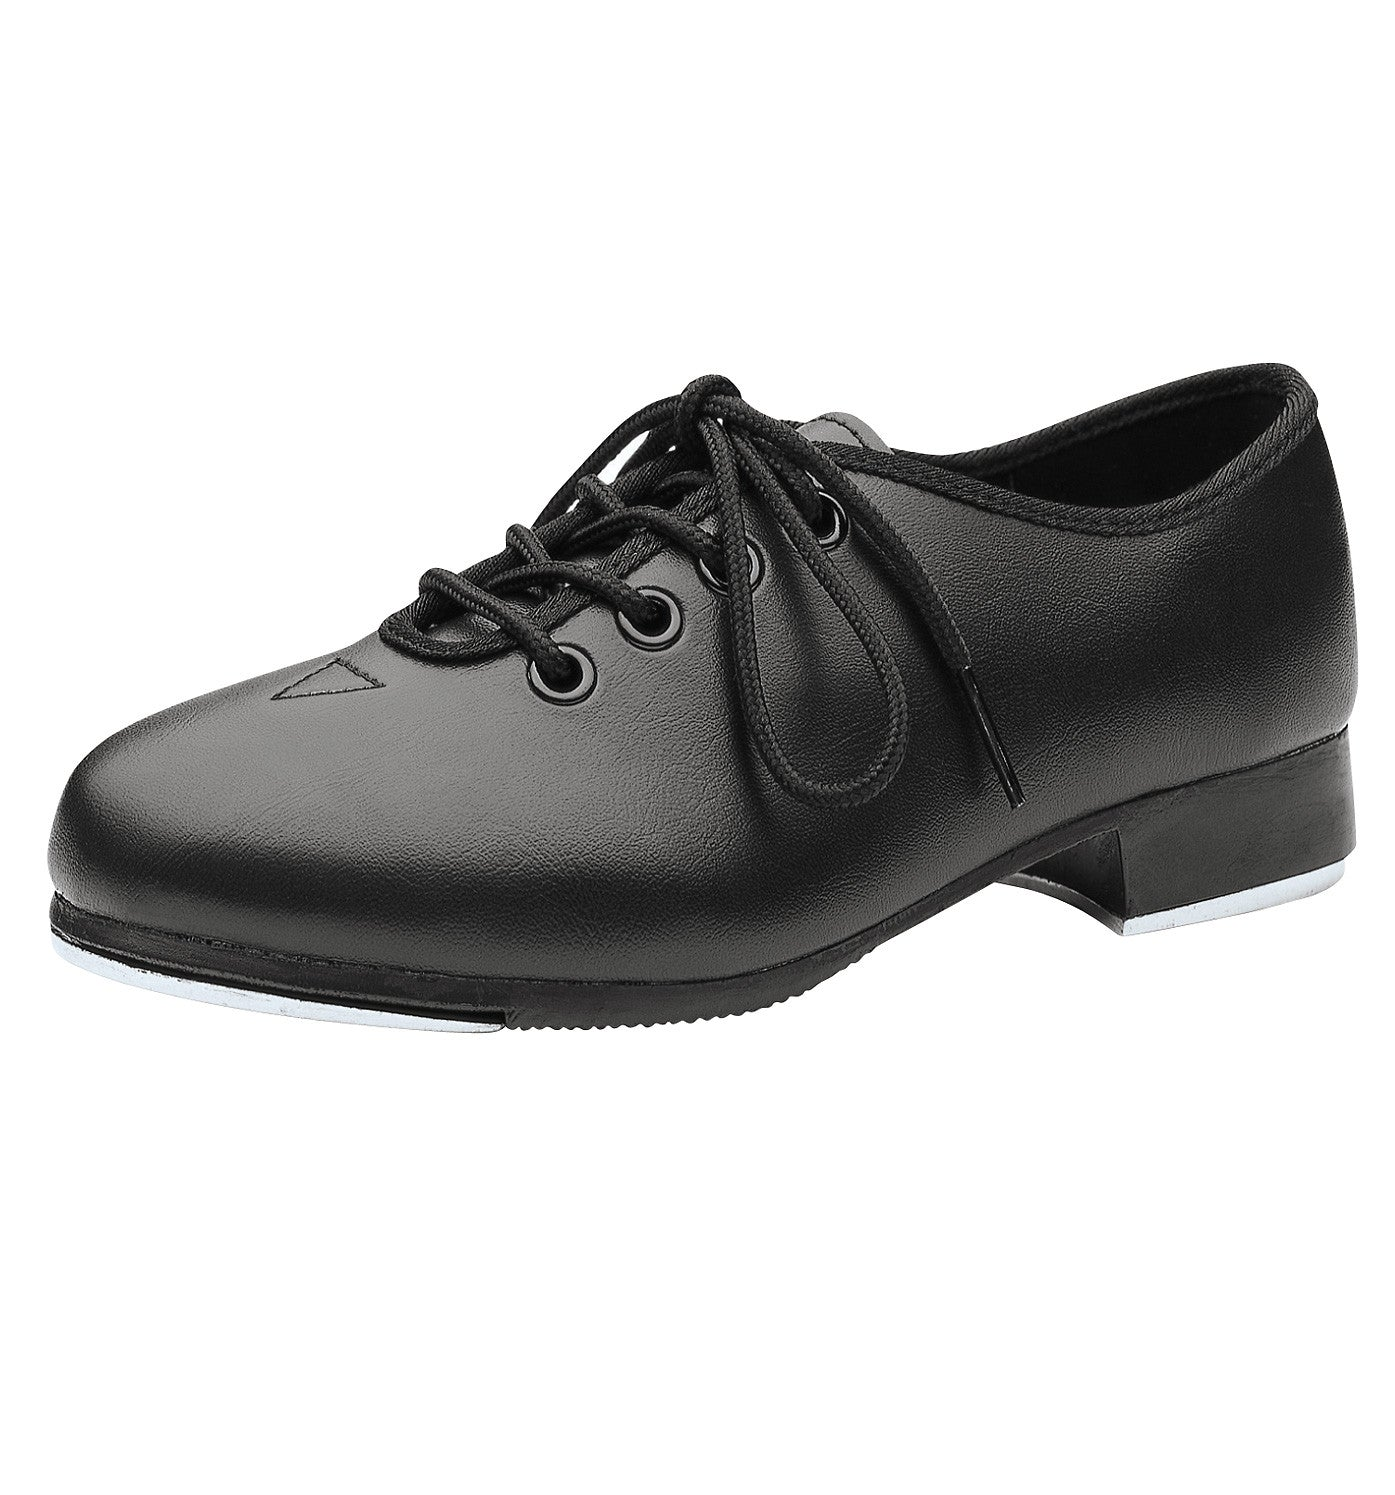 Adult Jazz Tap Shoes for Women